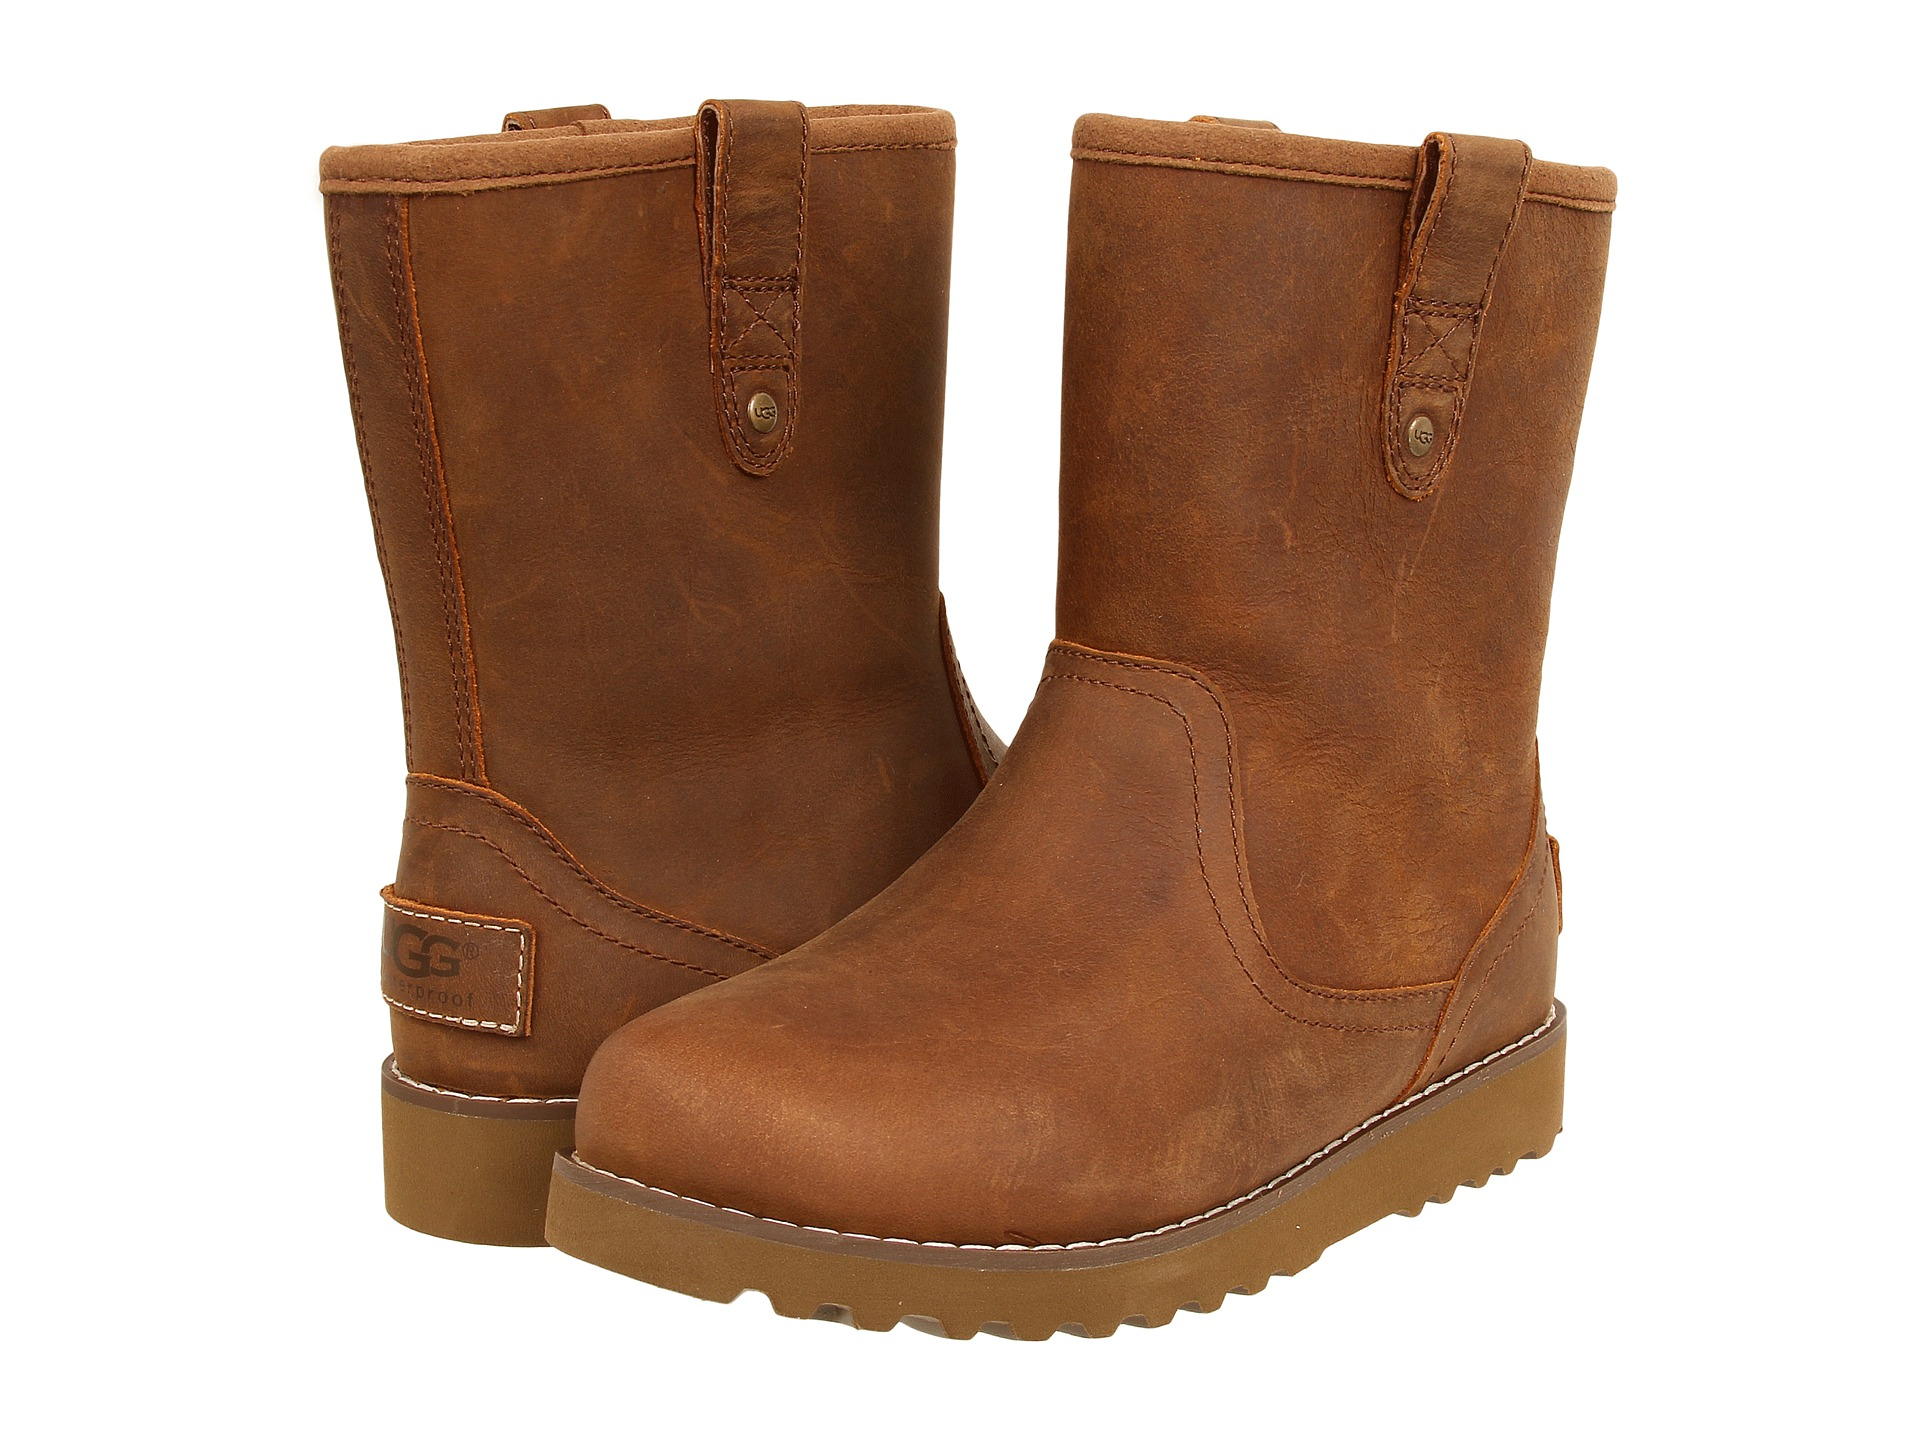 cheap ugg boots uk size 4